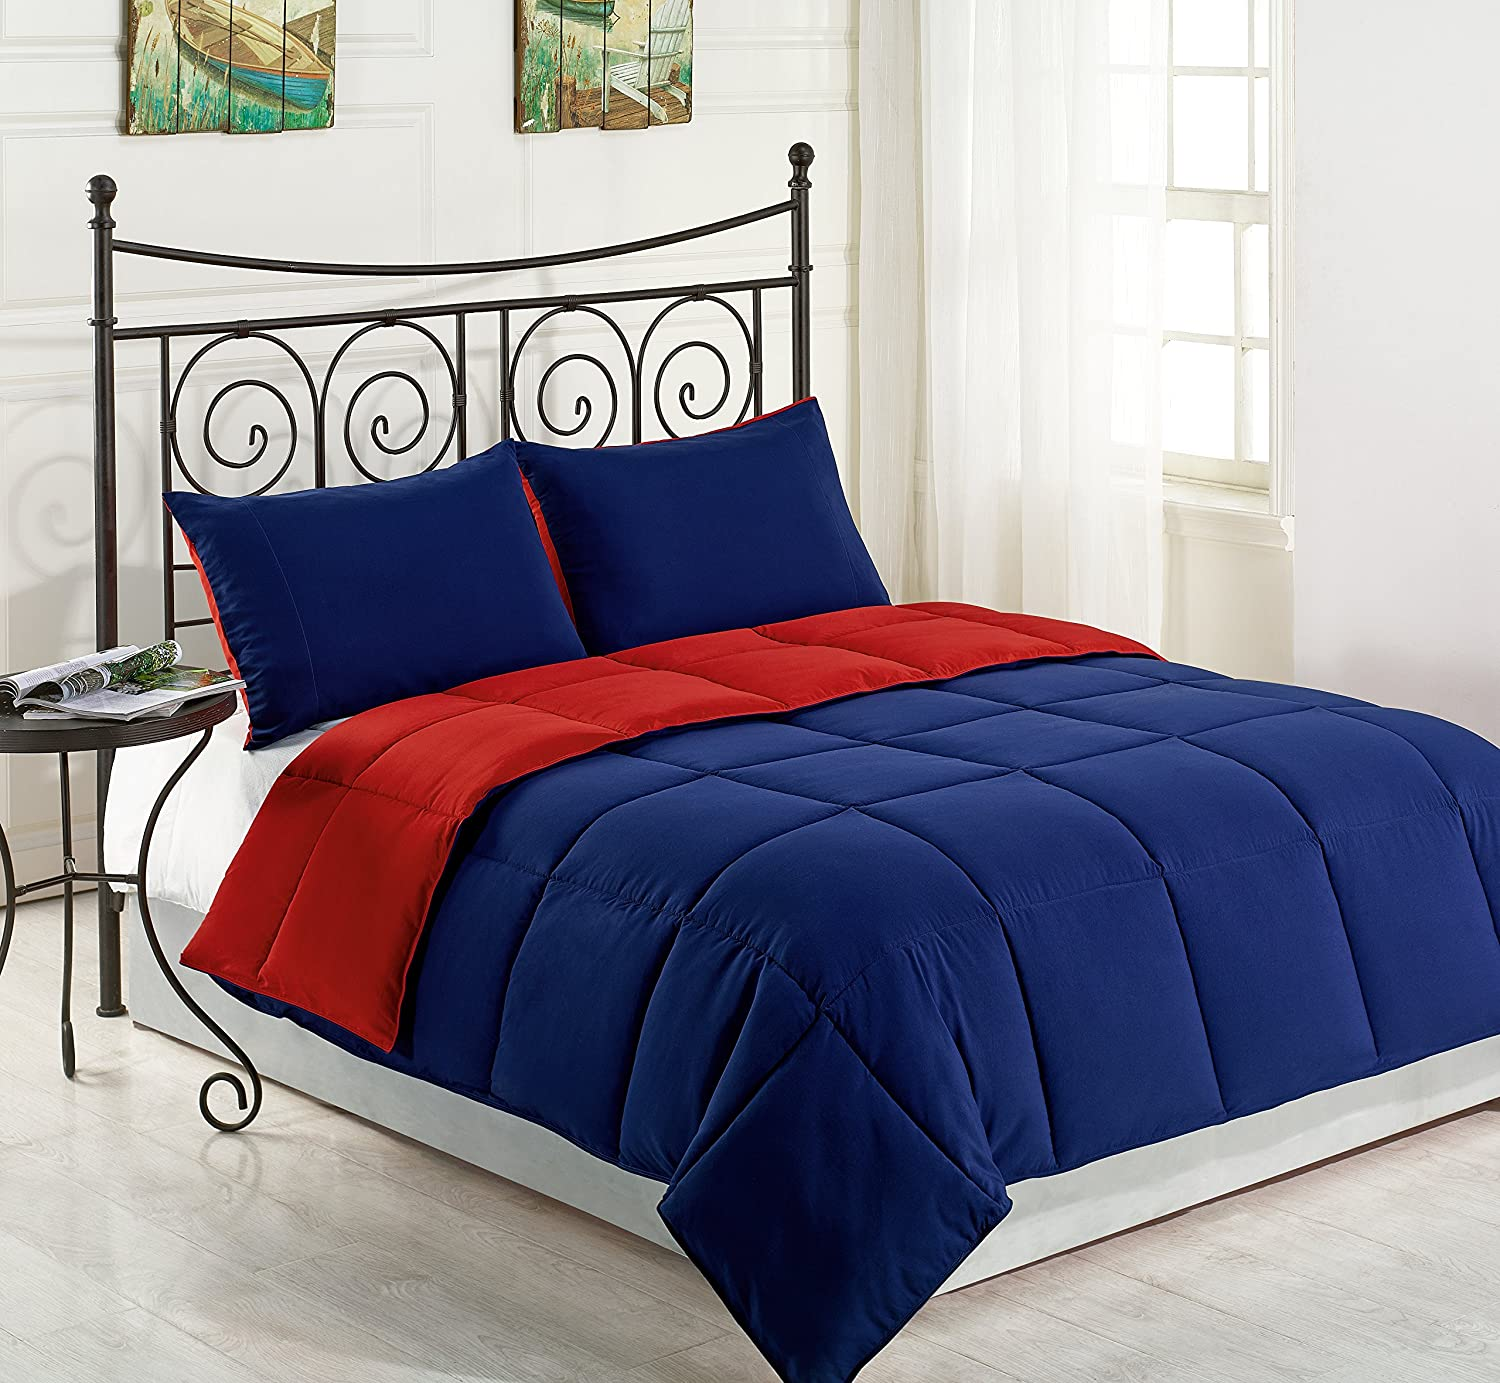 Cozy Beddings Comforter Set, Reversible Down Alternative, Box Stitch Bed Cover, King, bluee Red